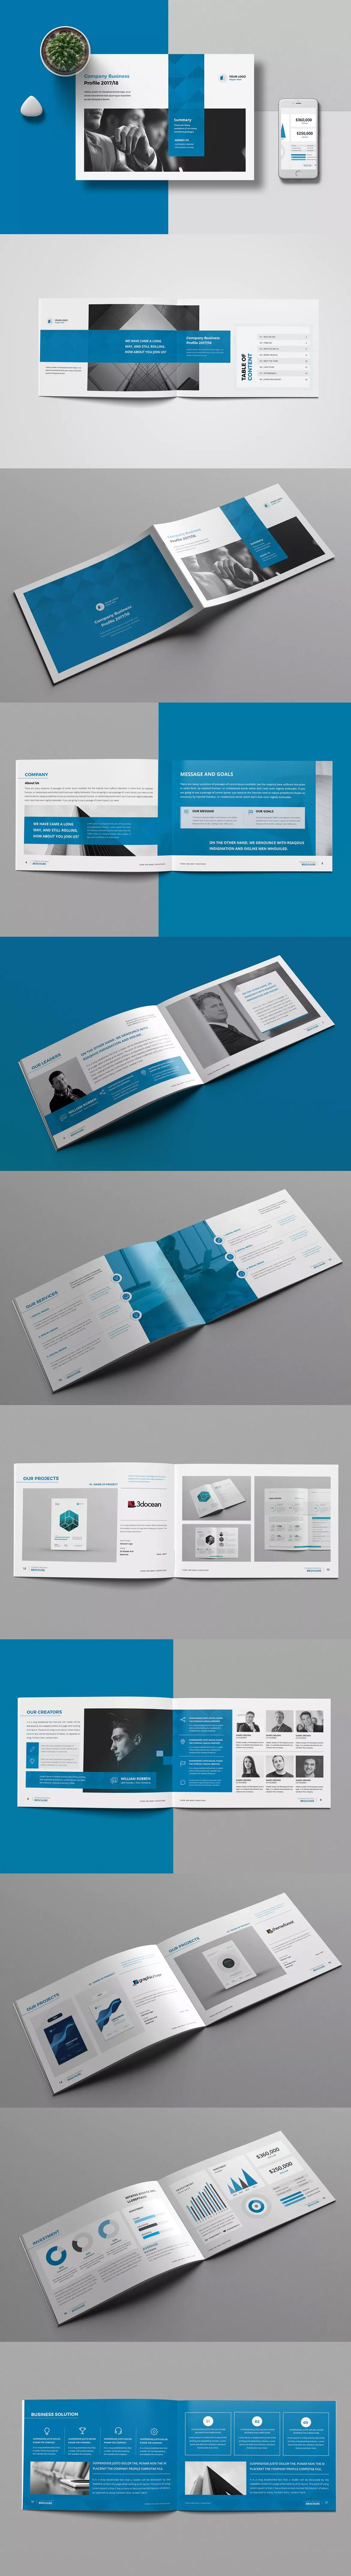 Company Profile 20 Pages Template InDesign INDD - A5